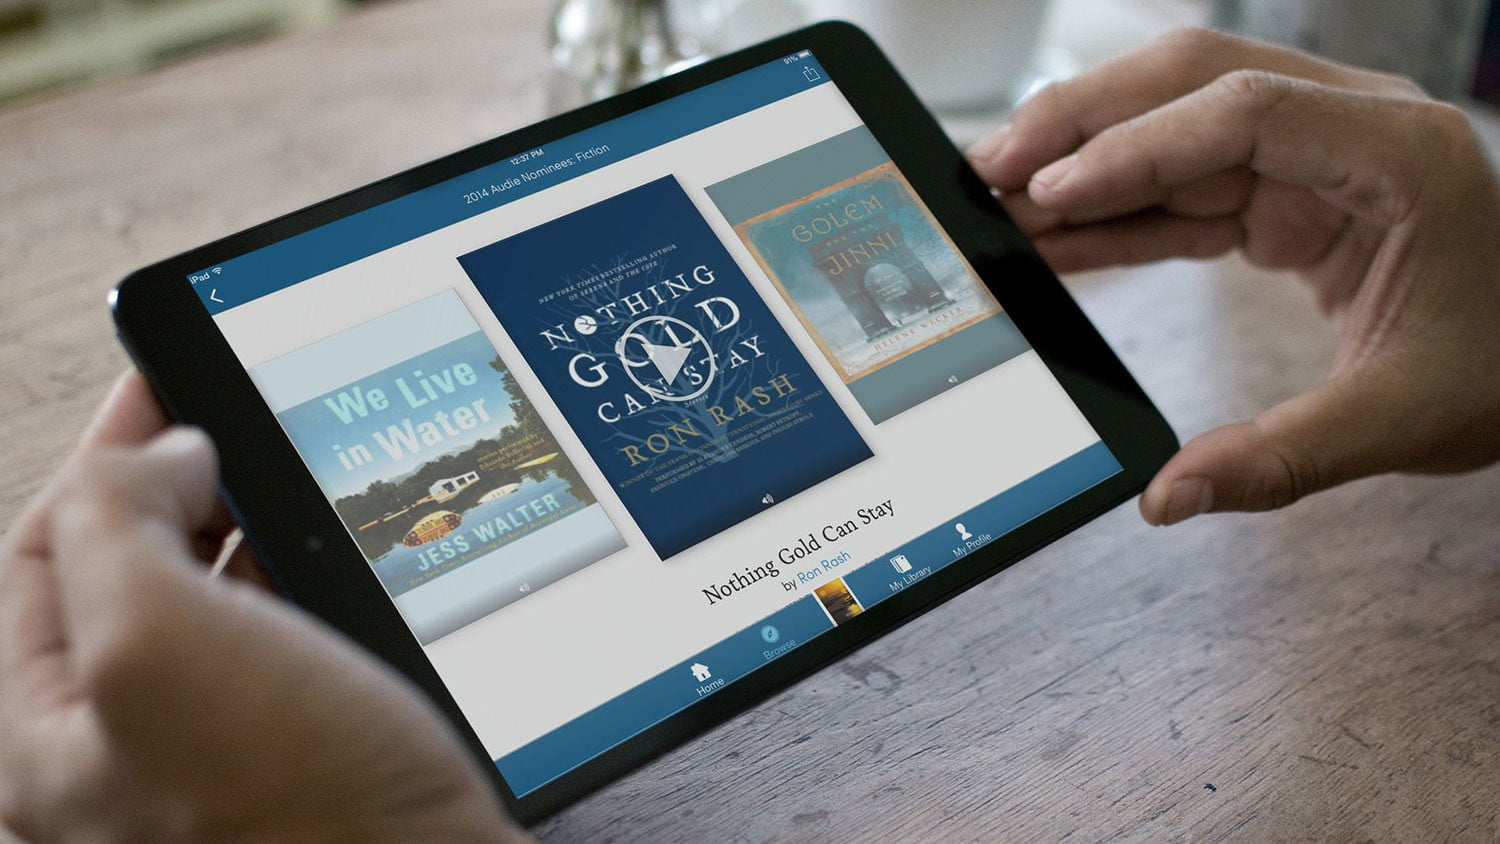 Best ebook apps scribd vs kindle unlimited vs bookmate digital best ebook apps scribd vs kindle unlimited vs bookmate digital trends fandeluxe Choice Image